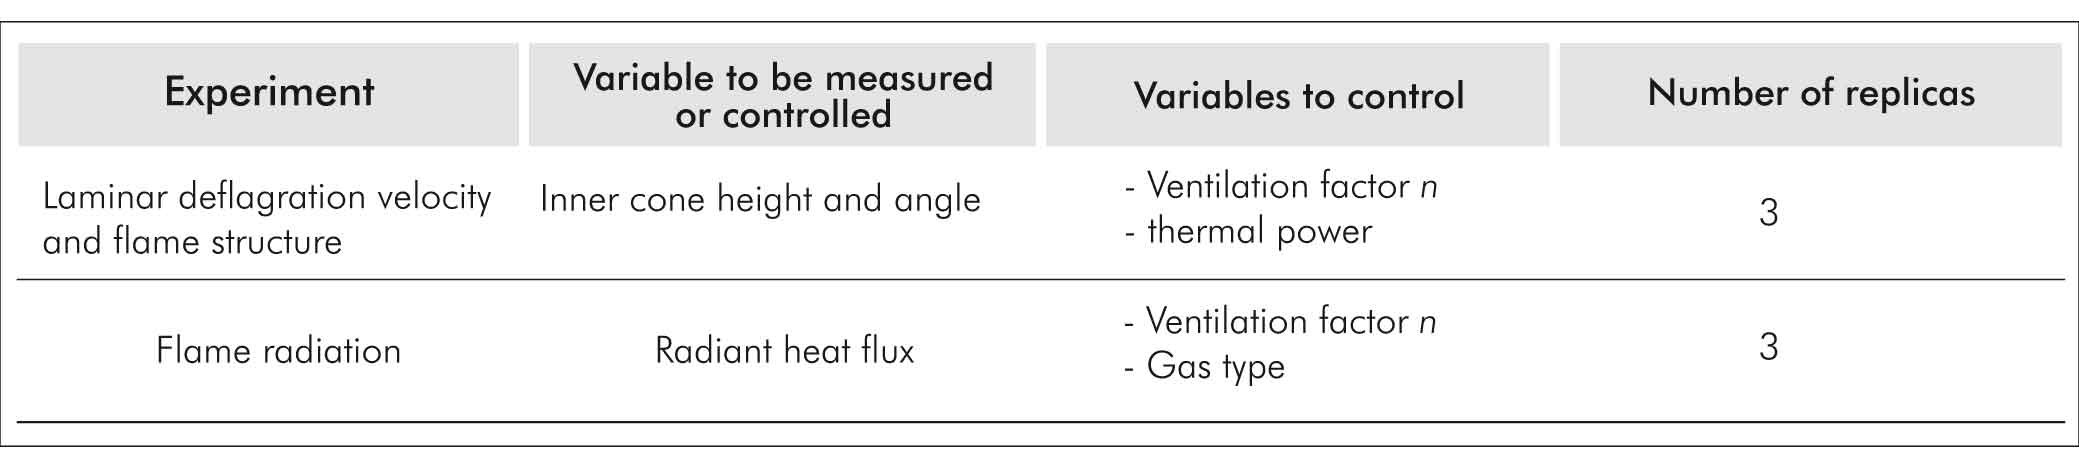 COMPARISON OF COMBUSTION PROPERTIES OF SIMULATED BIOGAS AND METHANE